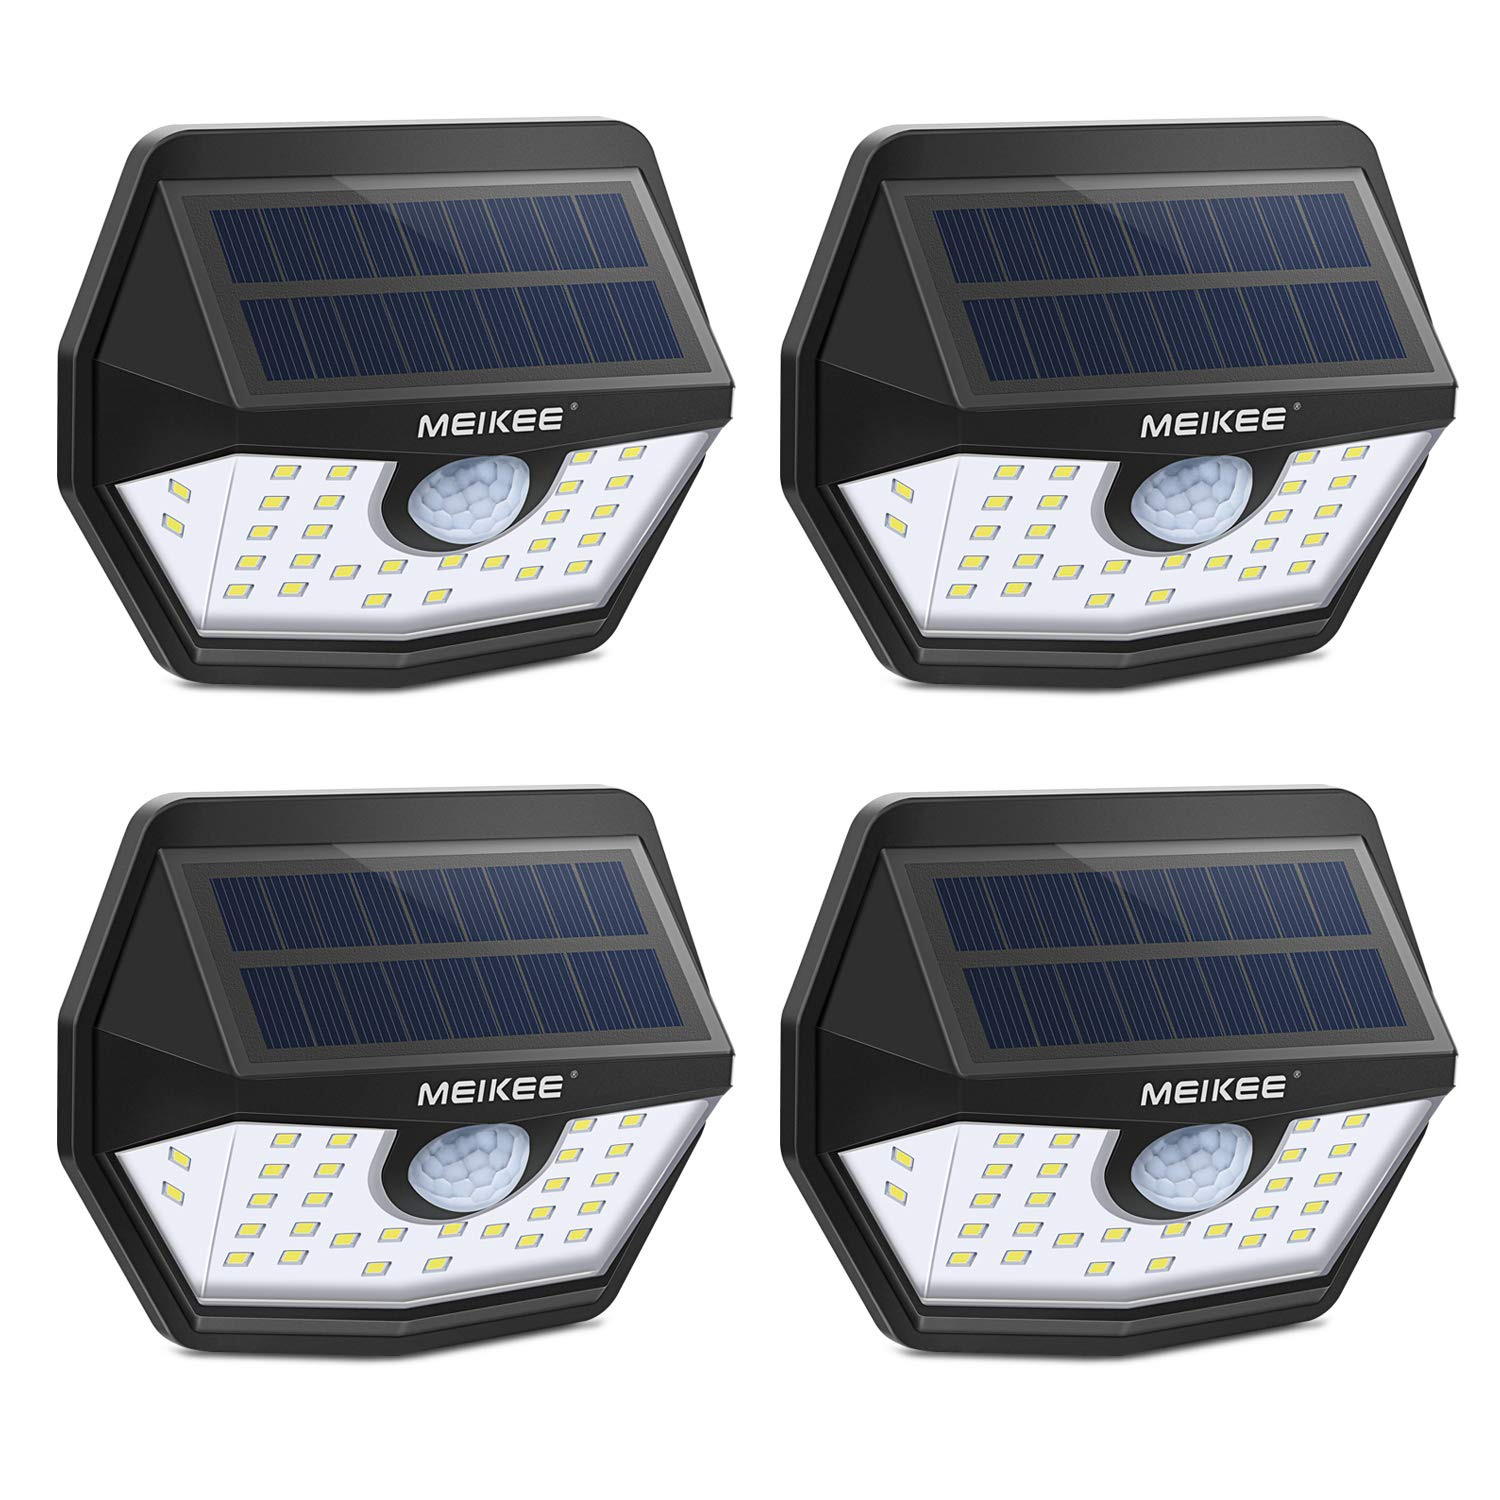 MEIKEE Solar Lights Outdoor, 30 LED Wireless IP65 Waterproof Motion Sensor Light,Easy to Install Solar Lights with 120° Wide Angle,LED Solar Lights Perfect for Patio,Yard,Garden,Garage(450 LM,4-Pack) by MEIKEE